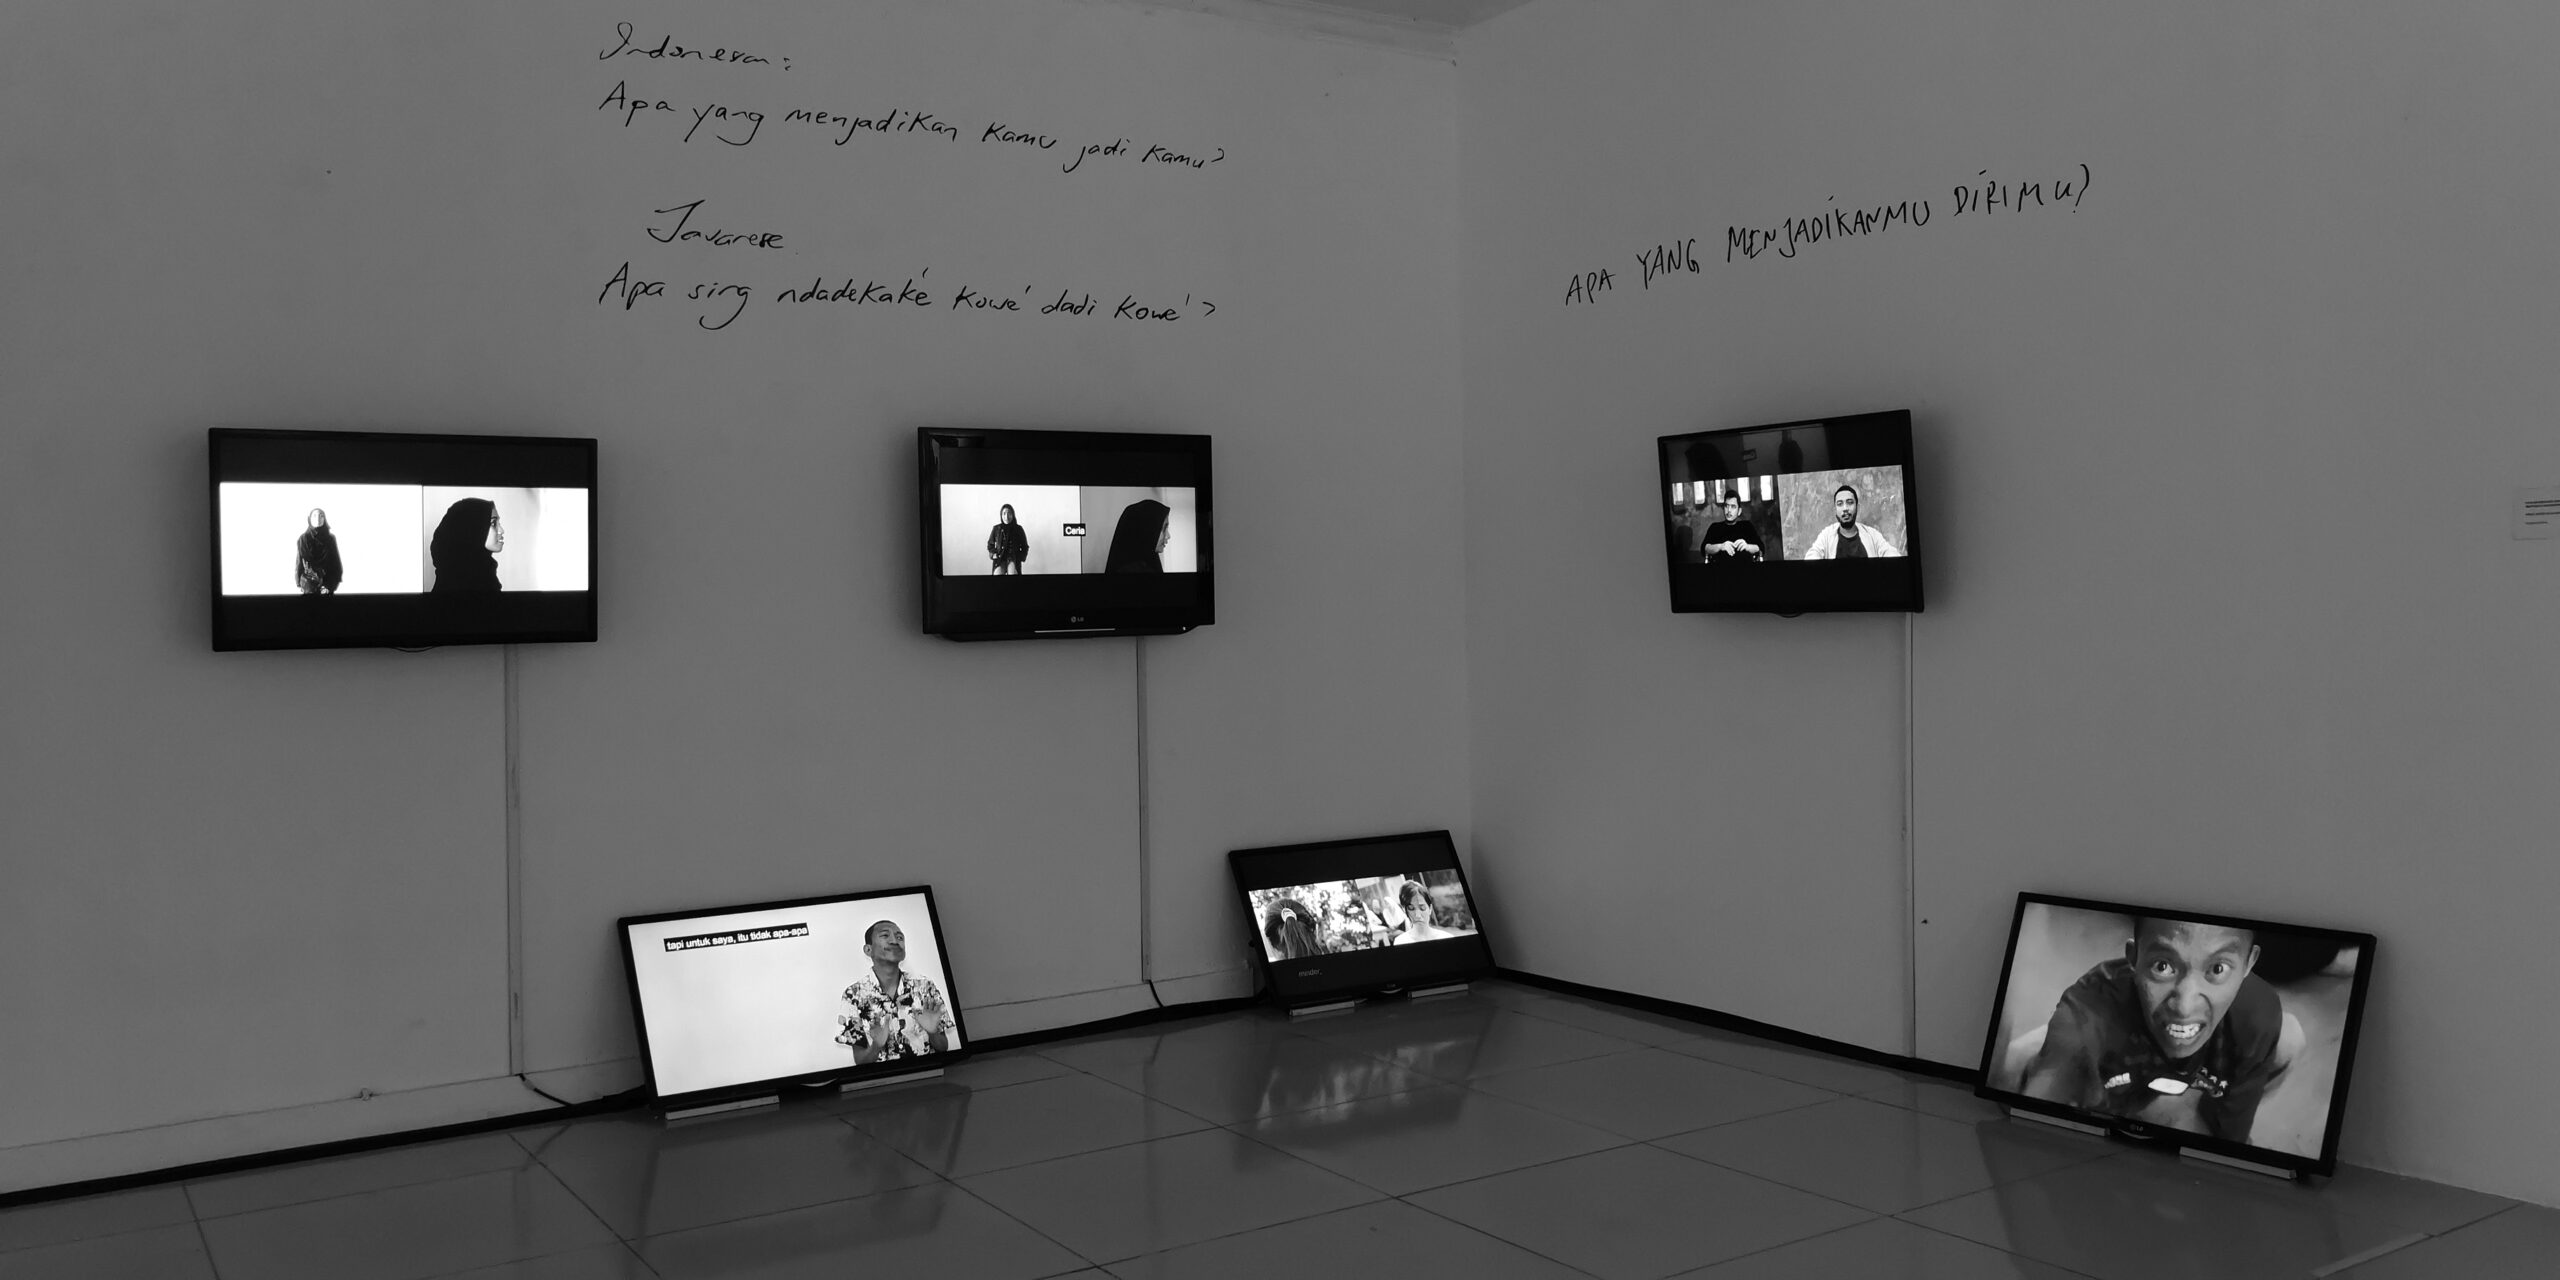 Exhibition view of video installation with monitors hung on walls and resting on the floor, as well as words written on the wall.